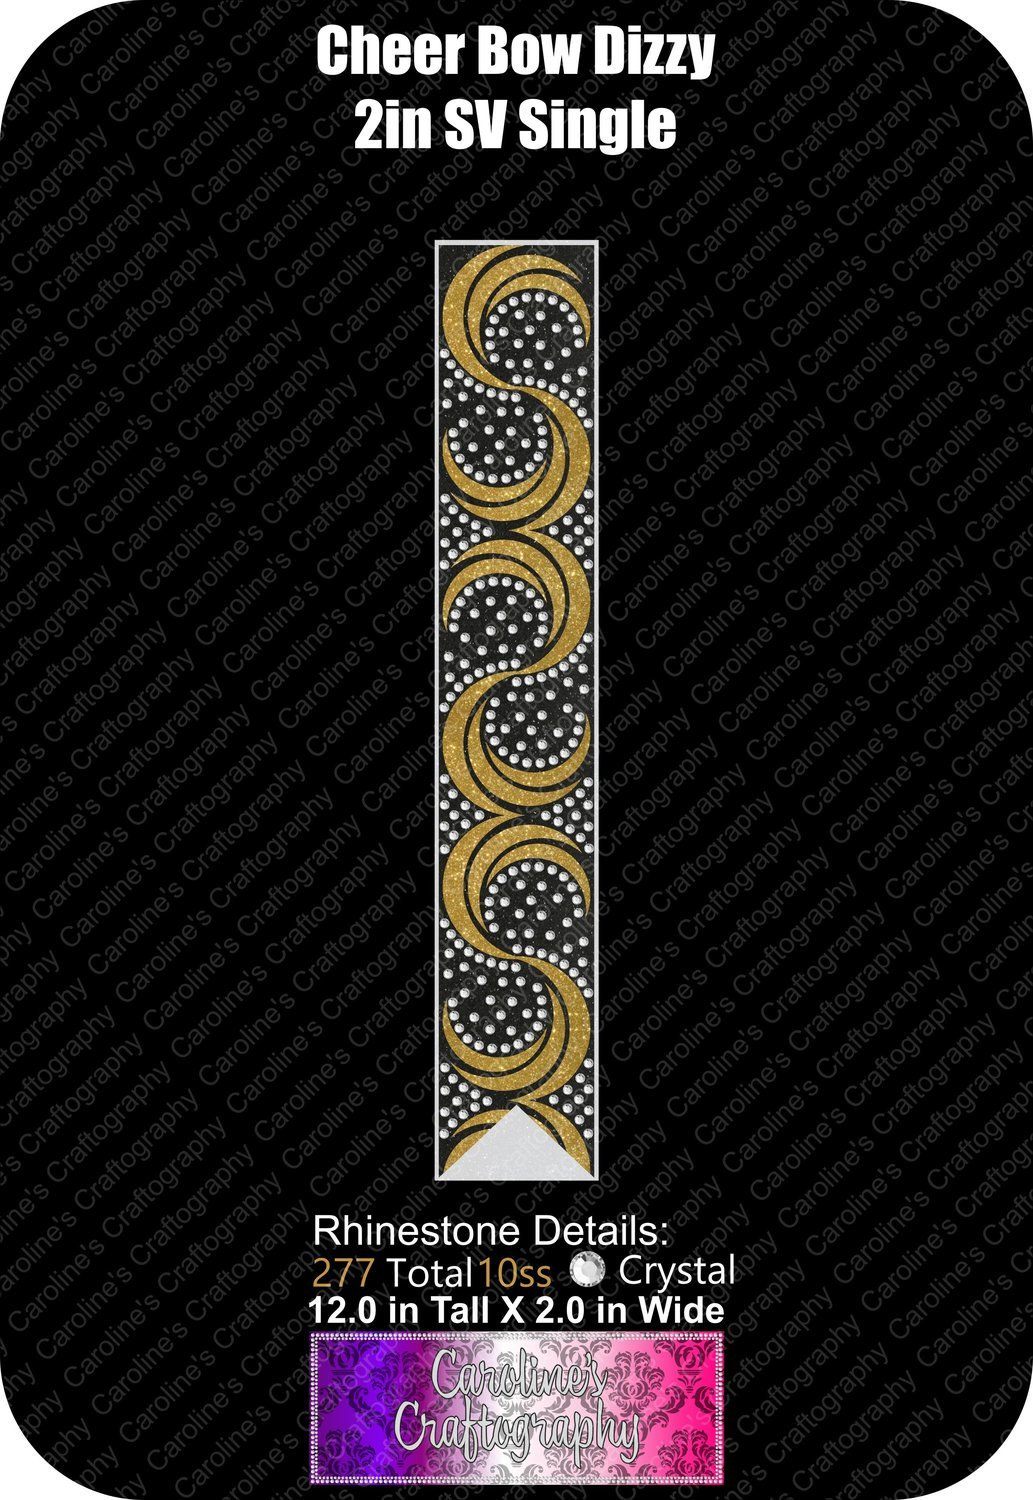 Dizzy 2in Single Color Stone Cheer Bow